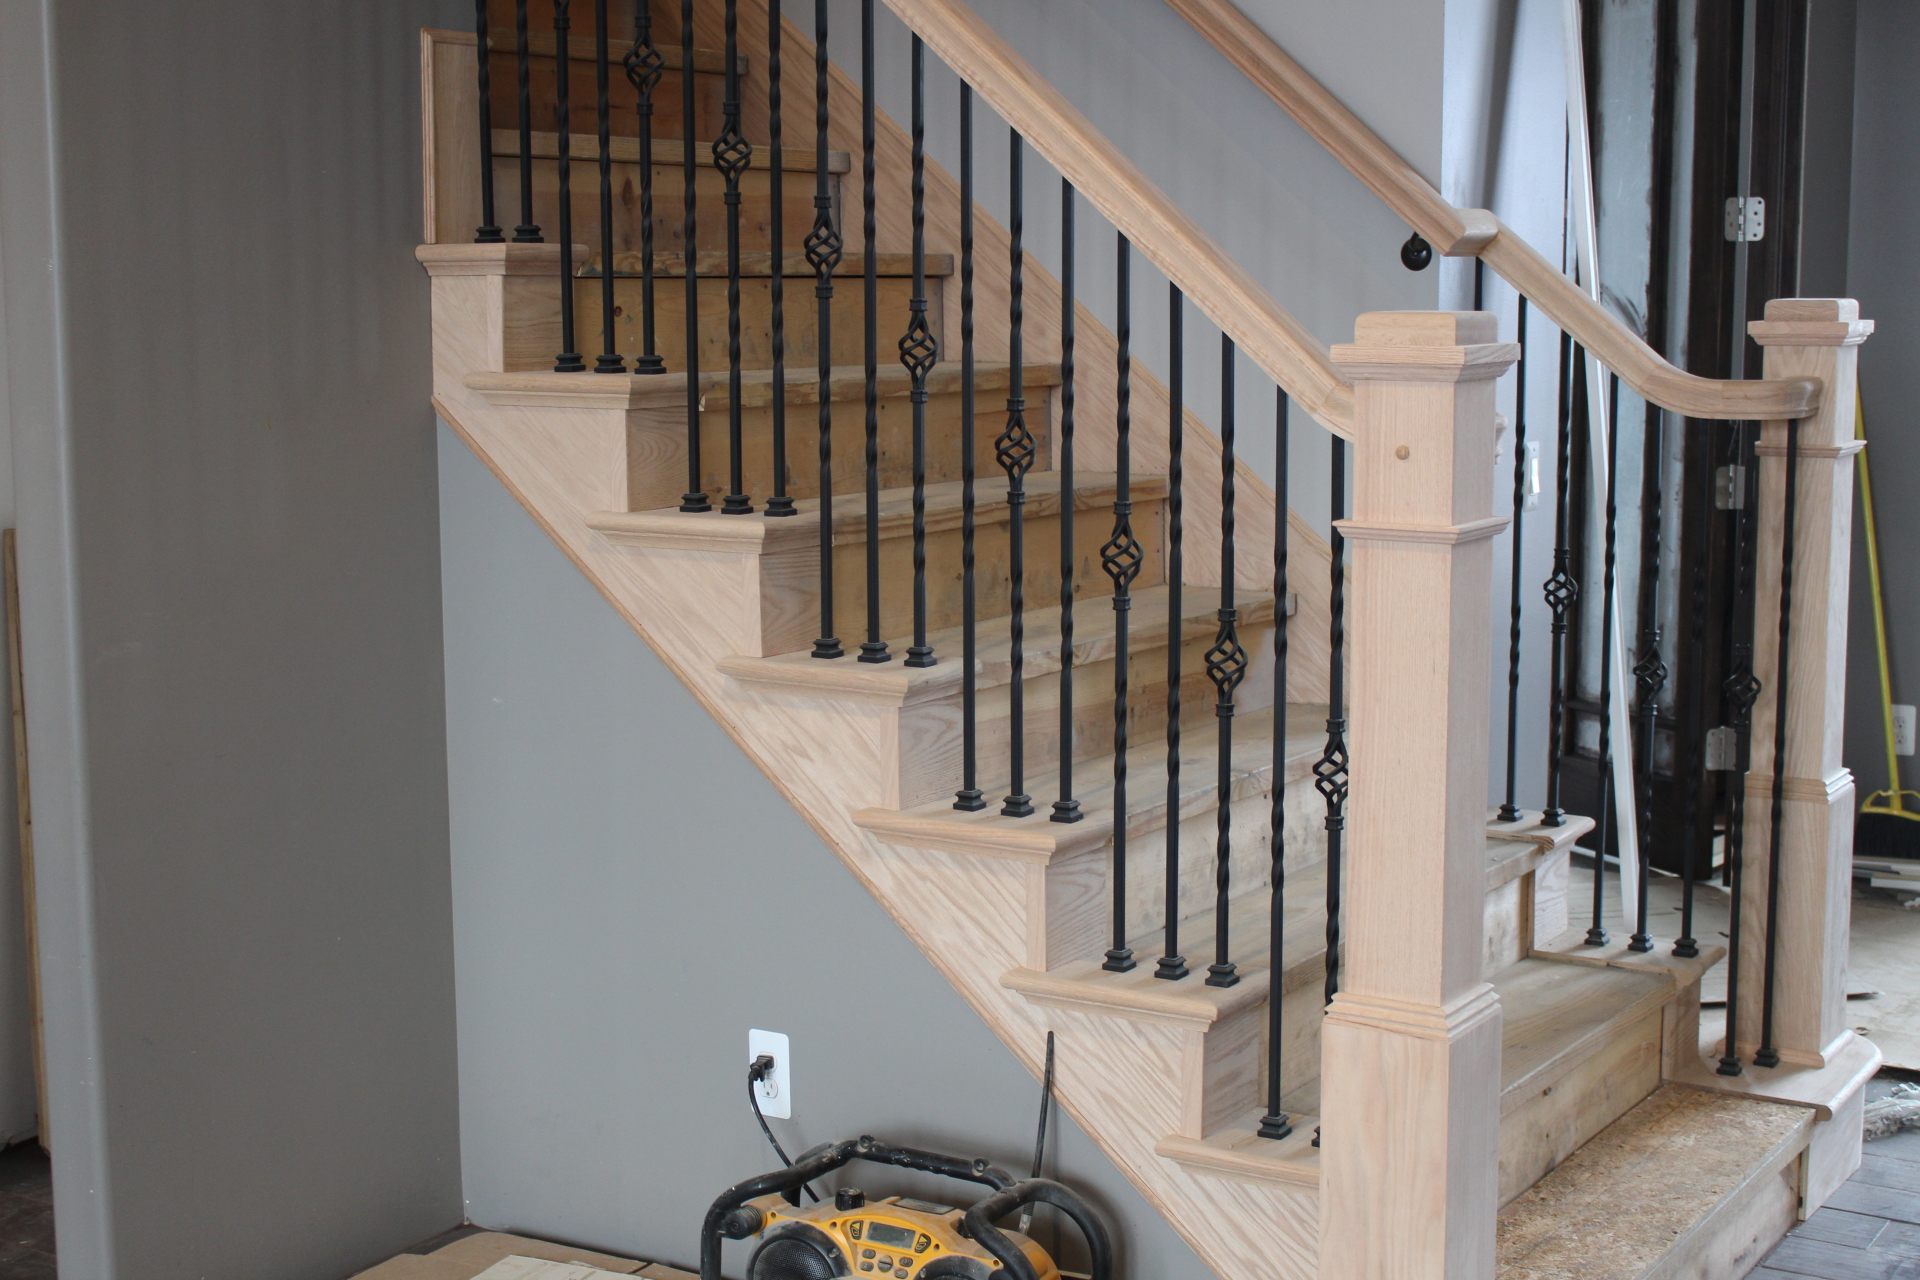 Custom handrails with false ends